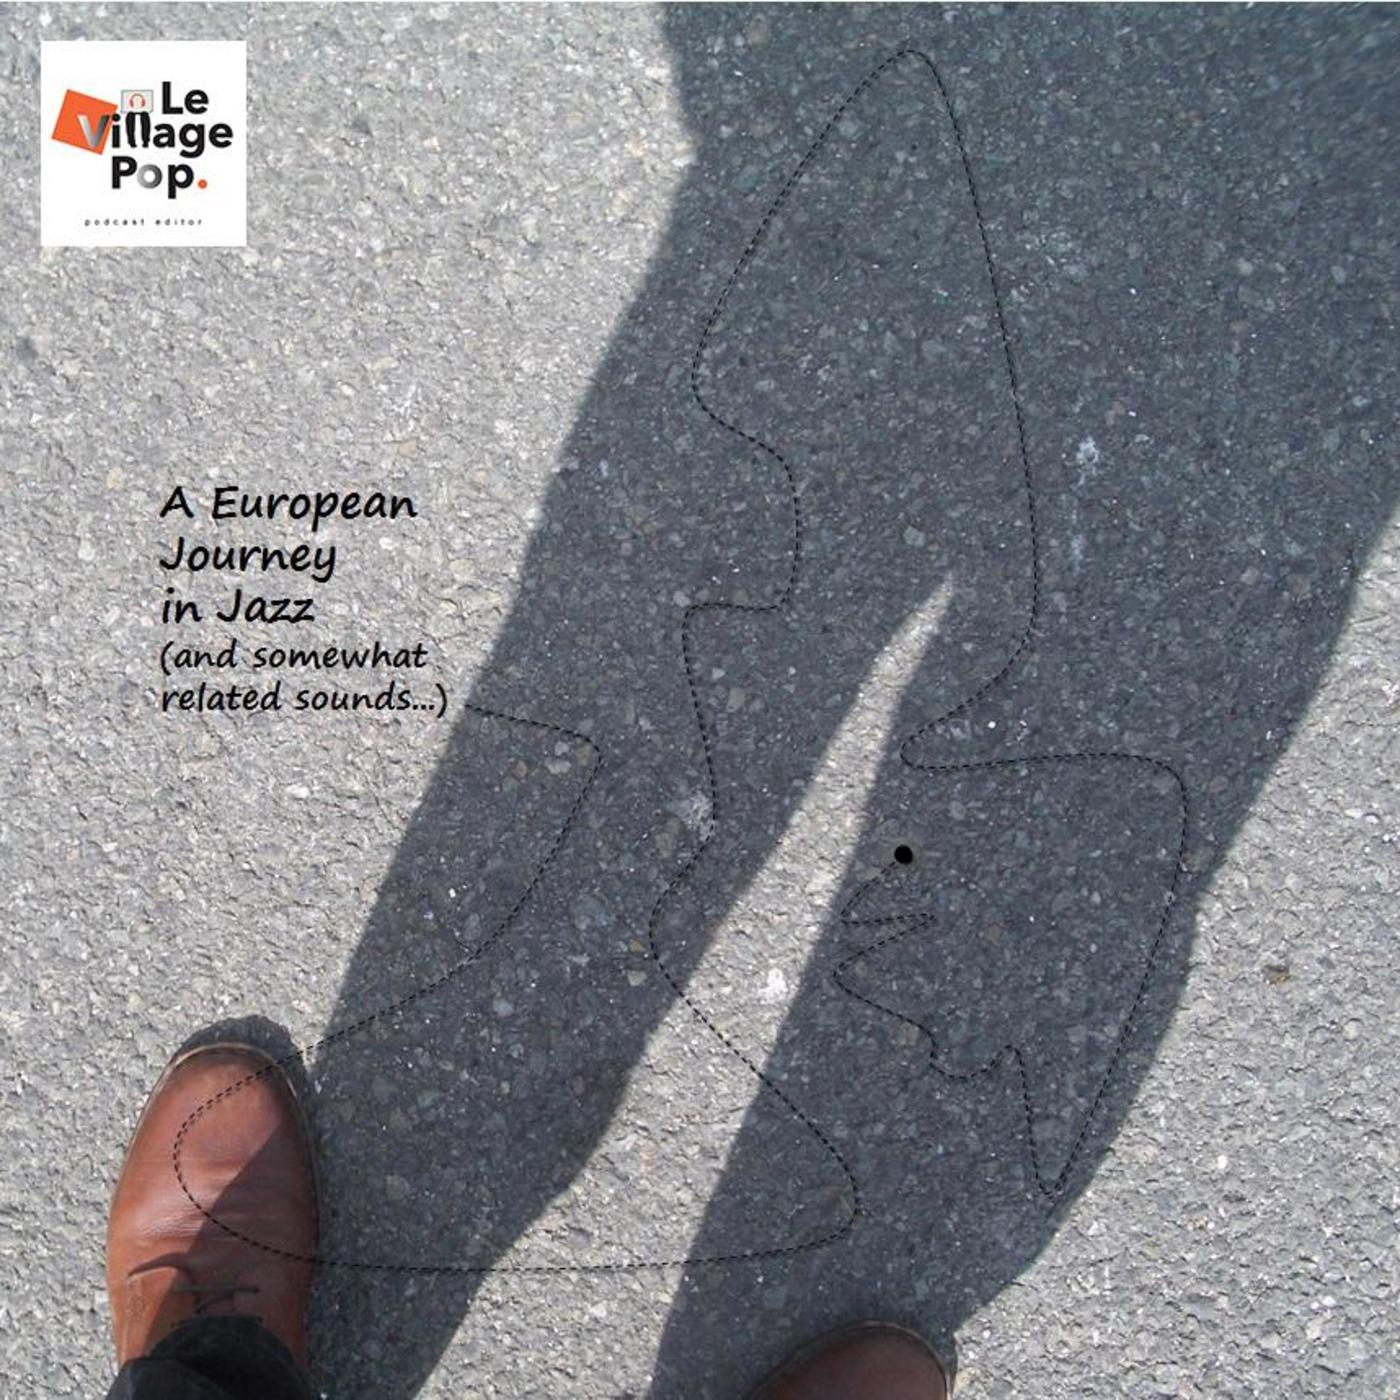 AEJiJ - A European Journey in Jazz (and somewhat related sounds...)